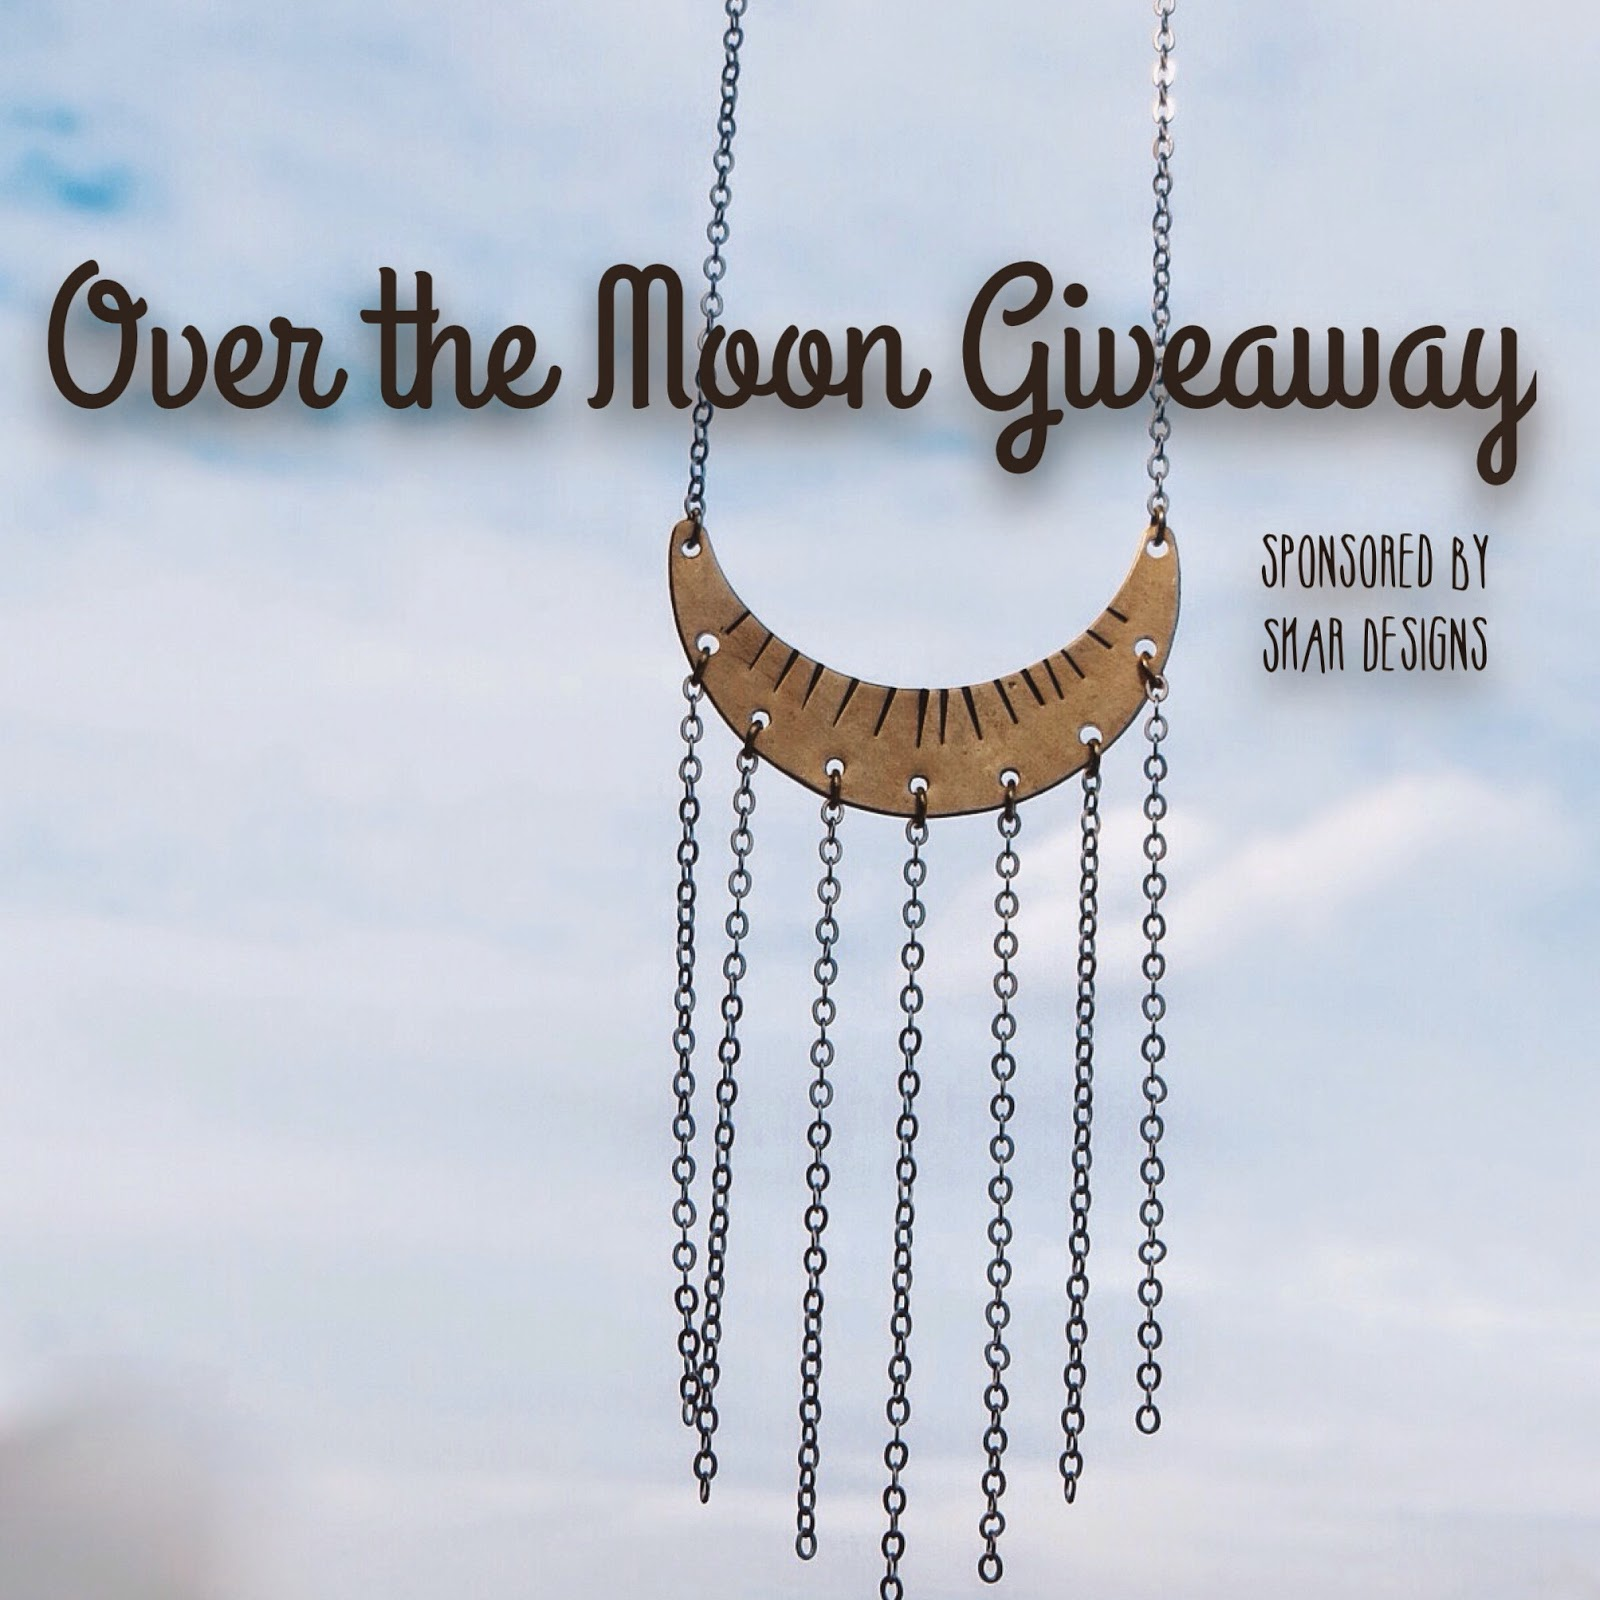 giveaway, freebie friday, sweepstakes, contest, etsy jewelry, handmade jewelry, skar designs jewelry, crescent moon necklace, boho moon necklace, bohemian jewelry, boho jewelry